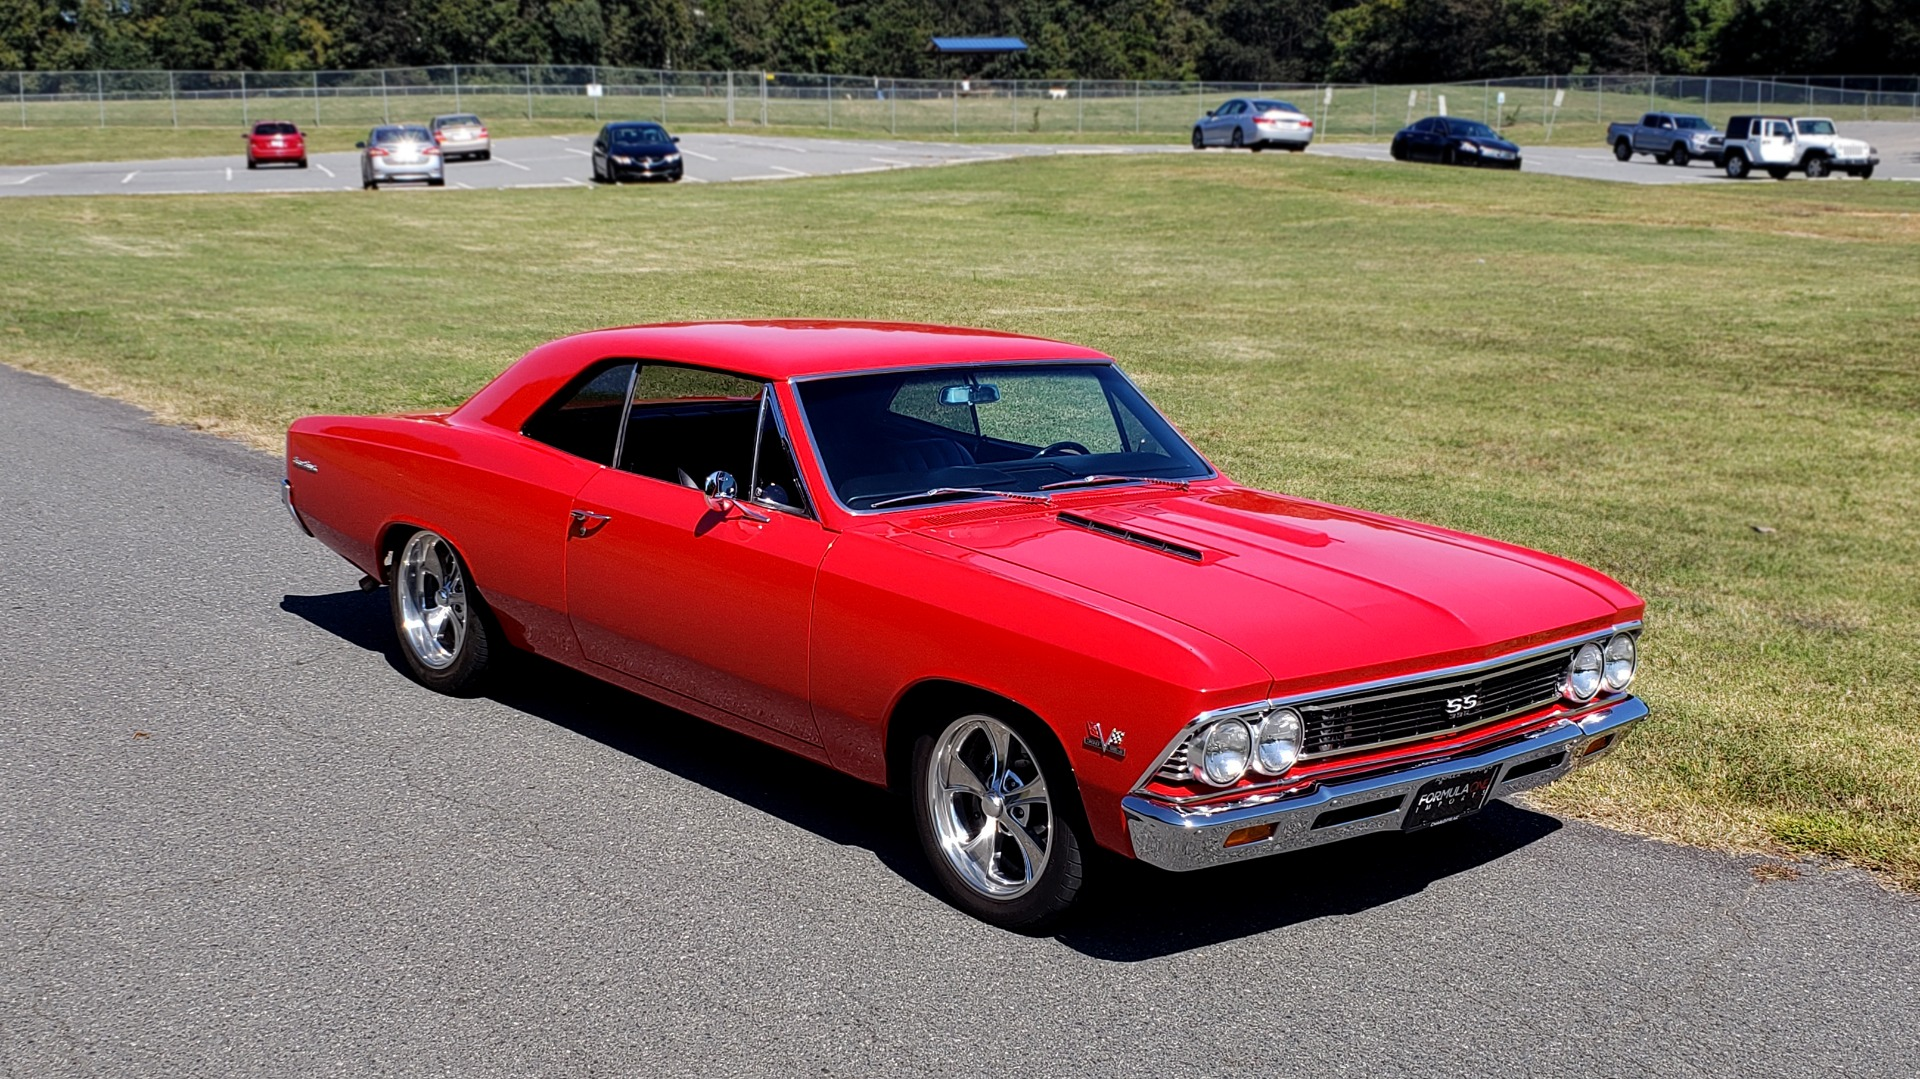 Used 1966 Chevrolet CHEVELLE SS 396 CUSTOM RESTO-MOD / 4-SPEED MANUAL / 12-BOLT REAR for sale $79,999 at Formula Imports in Charlotte NC 28227 9